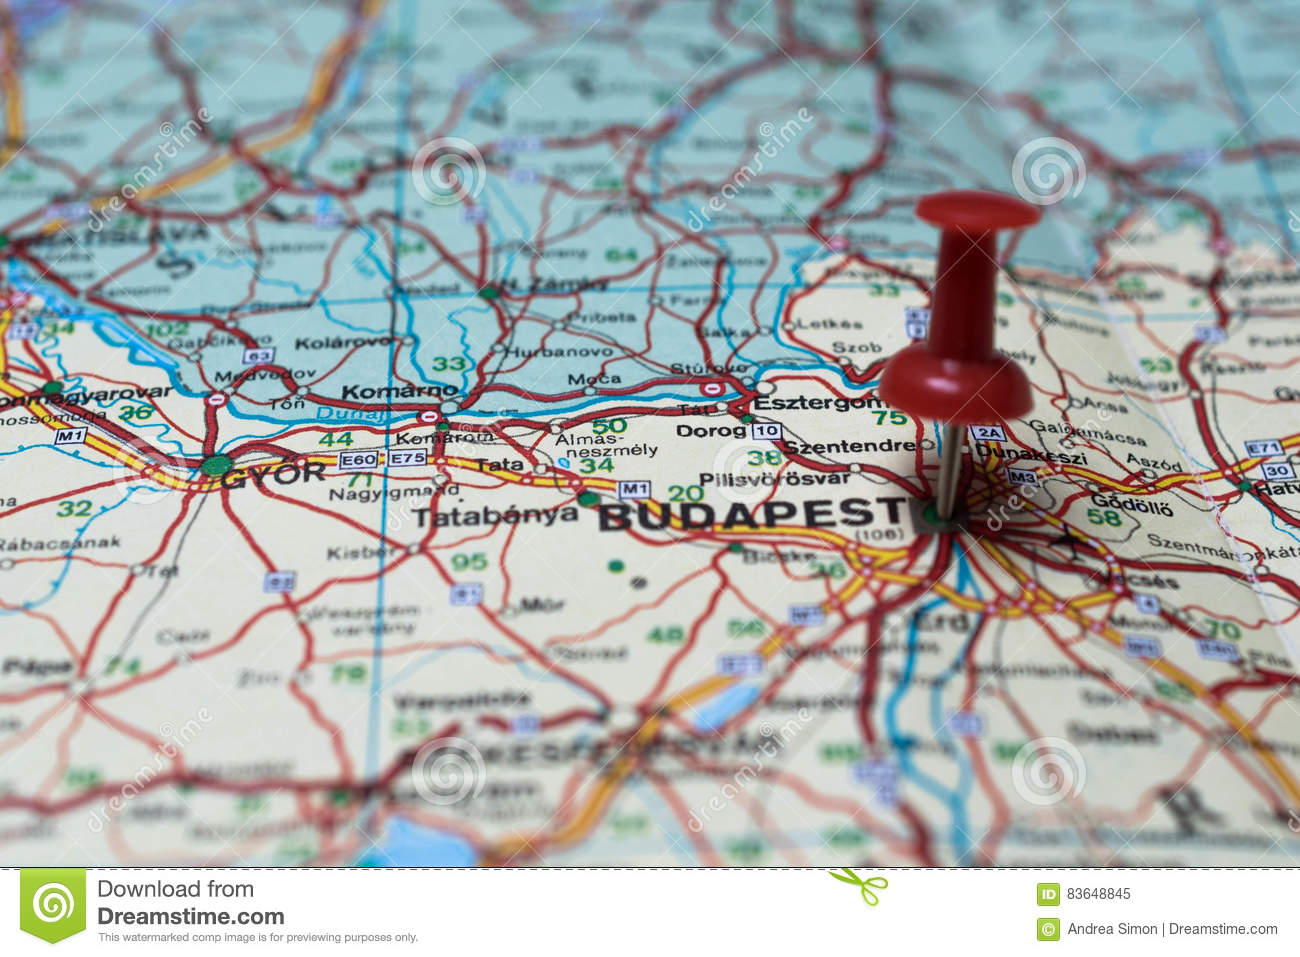 Budapest on map